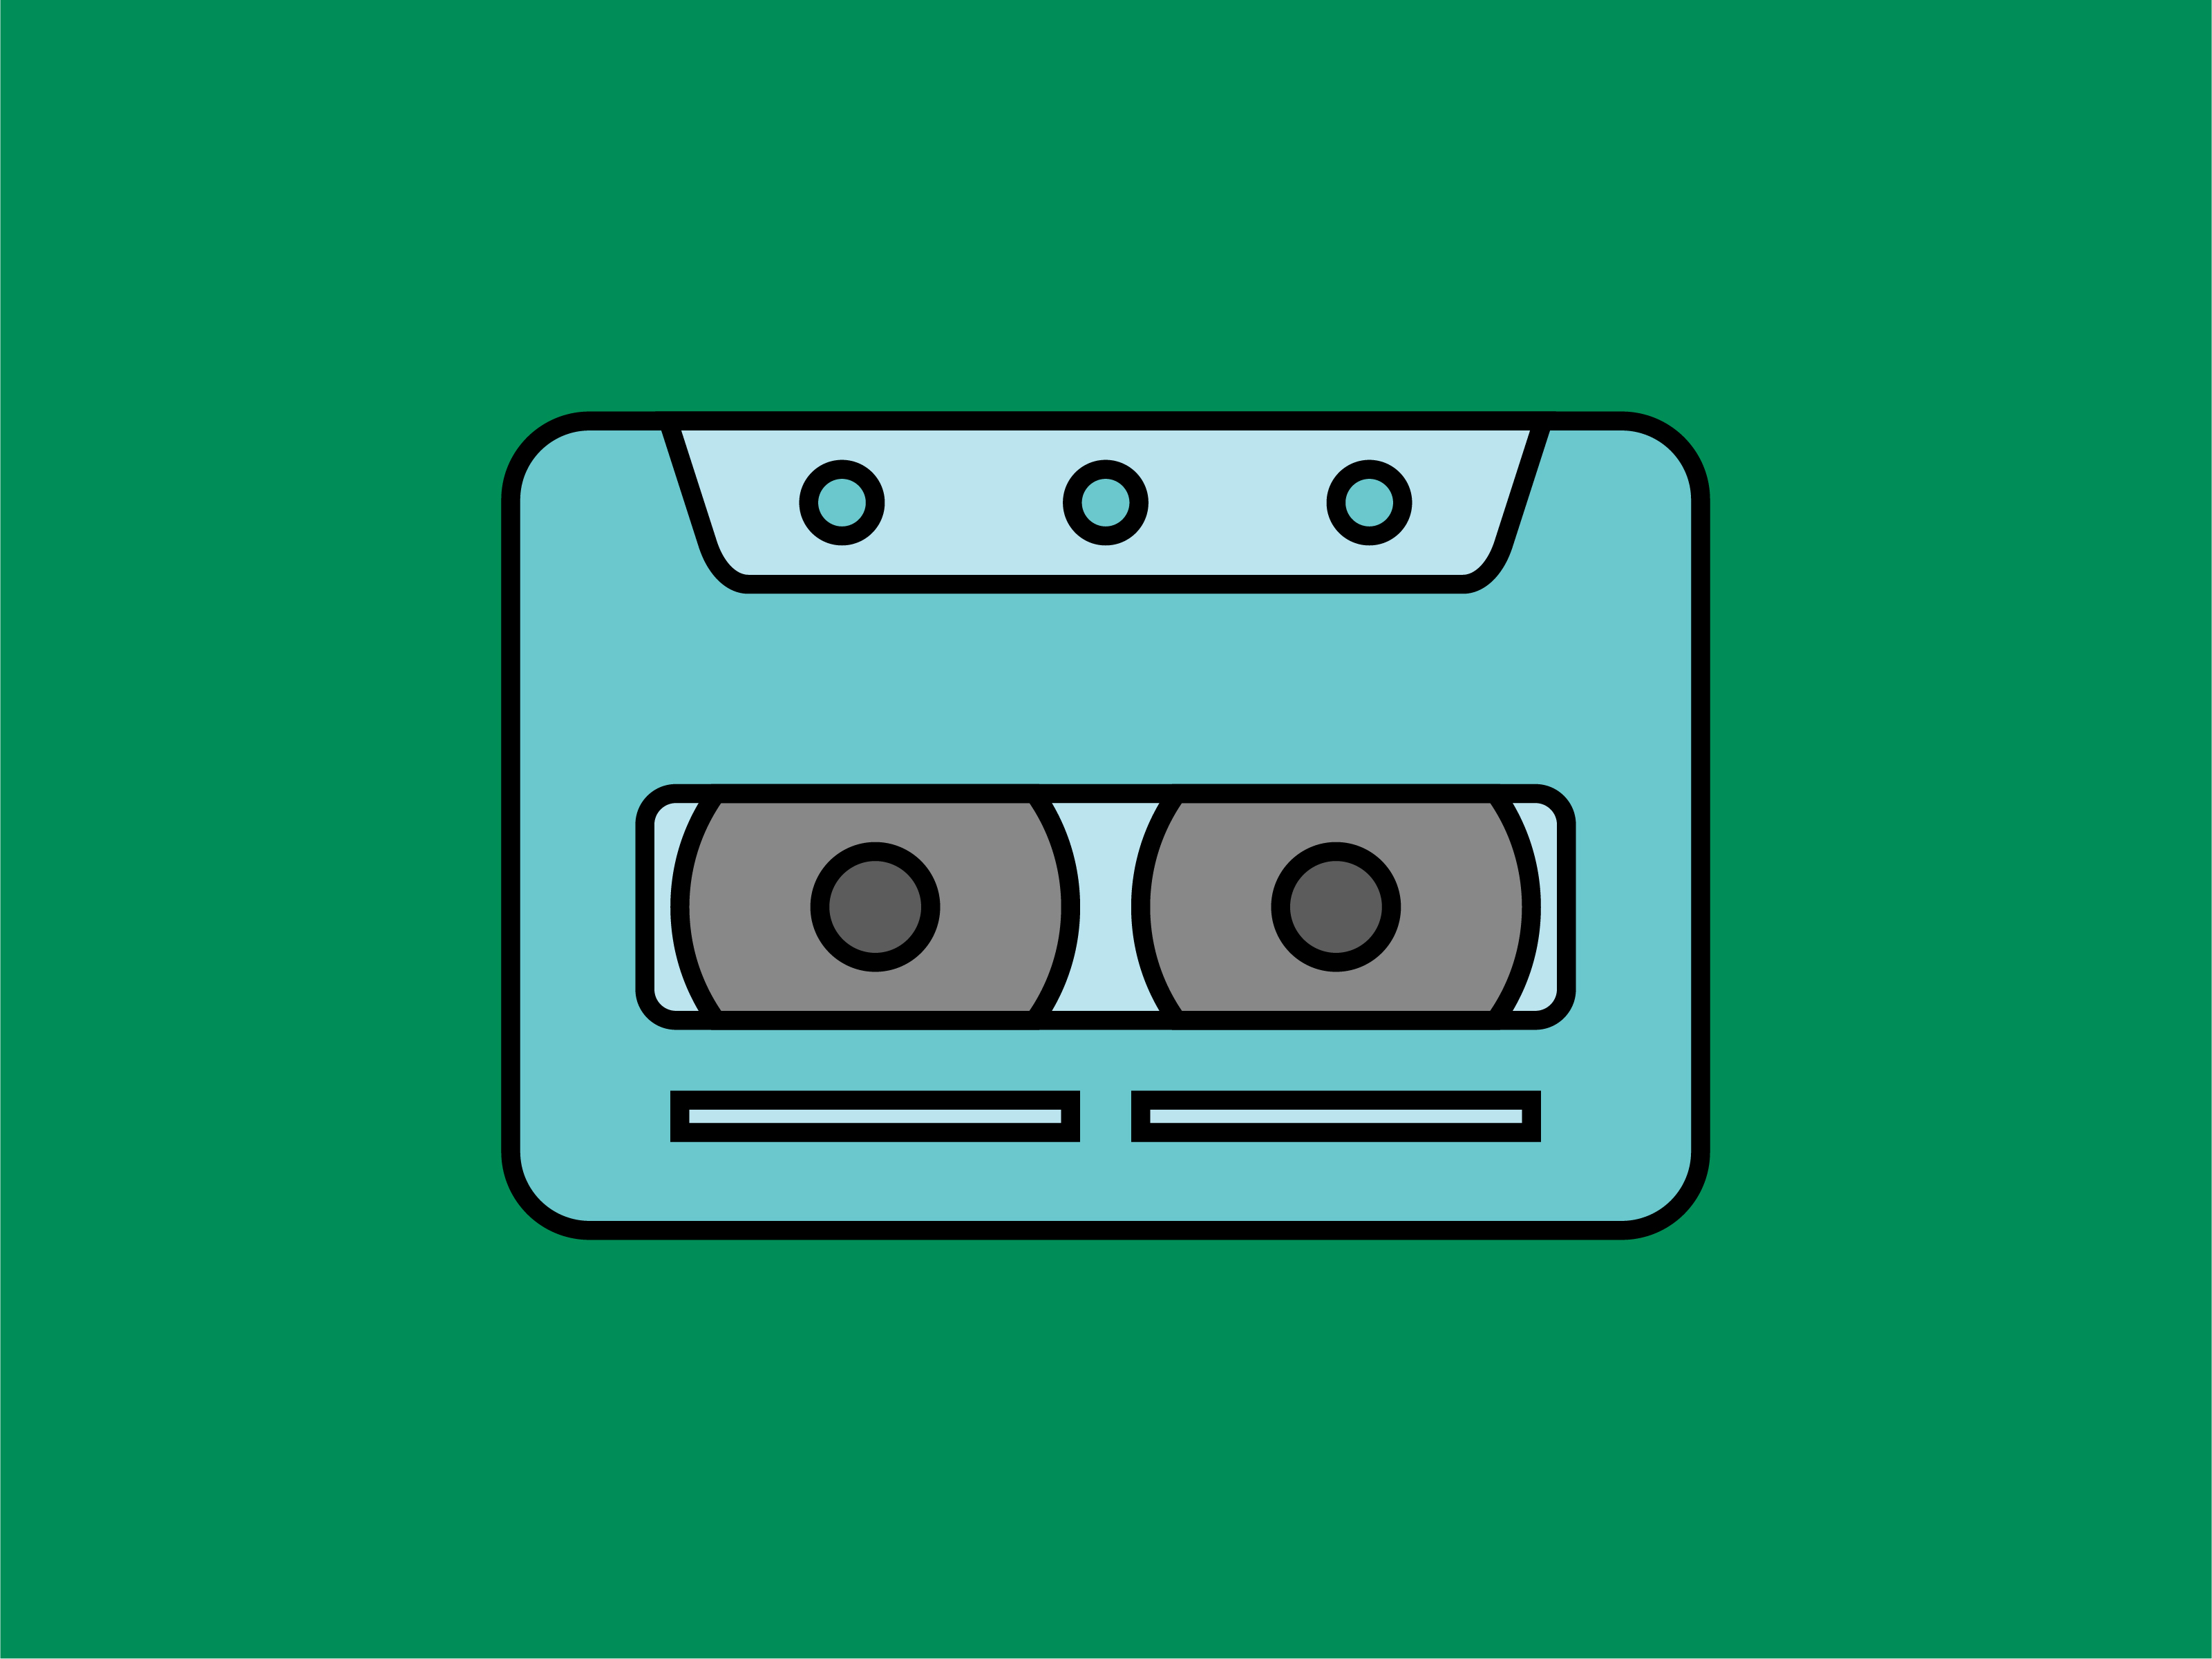 Icon Cassette Tape Full Color Outline Graphic By Meandmydate